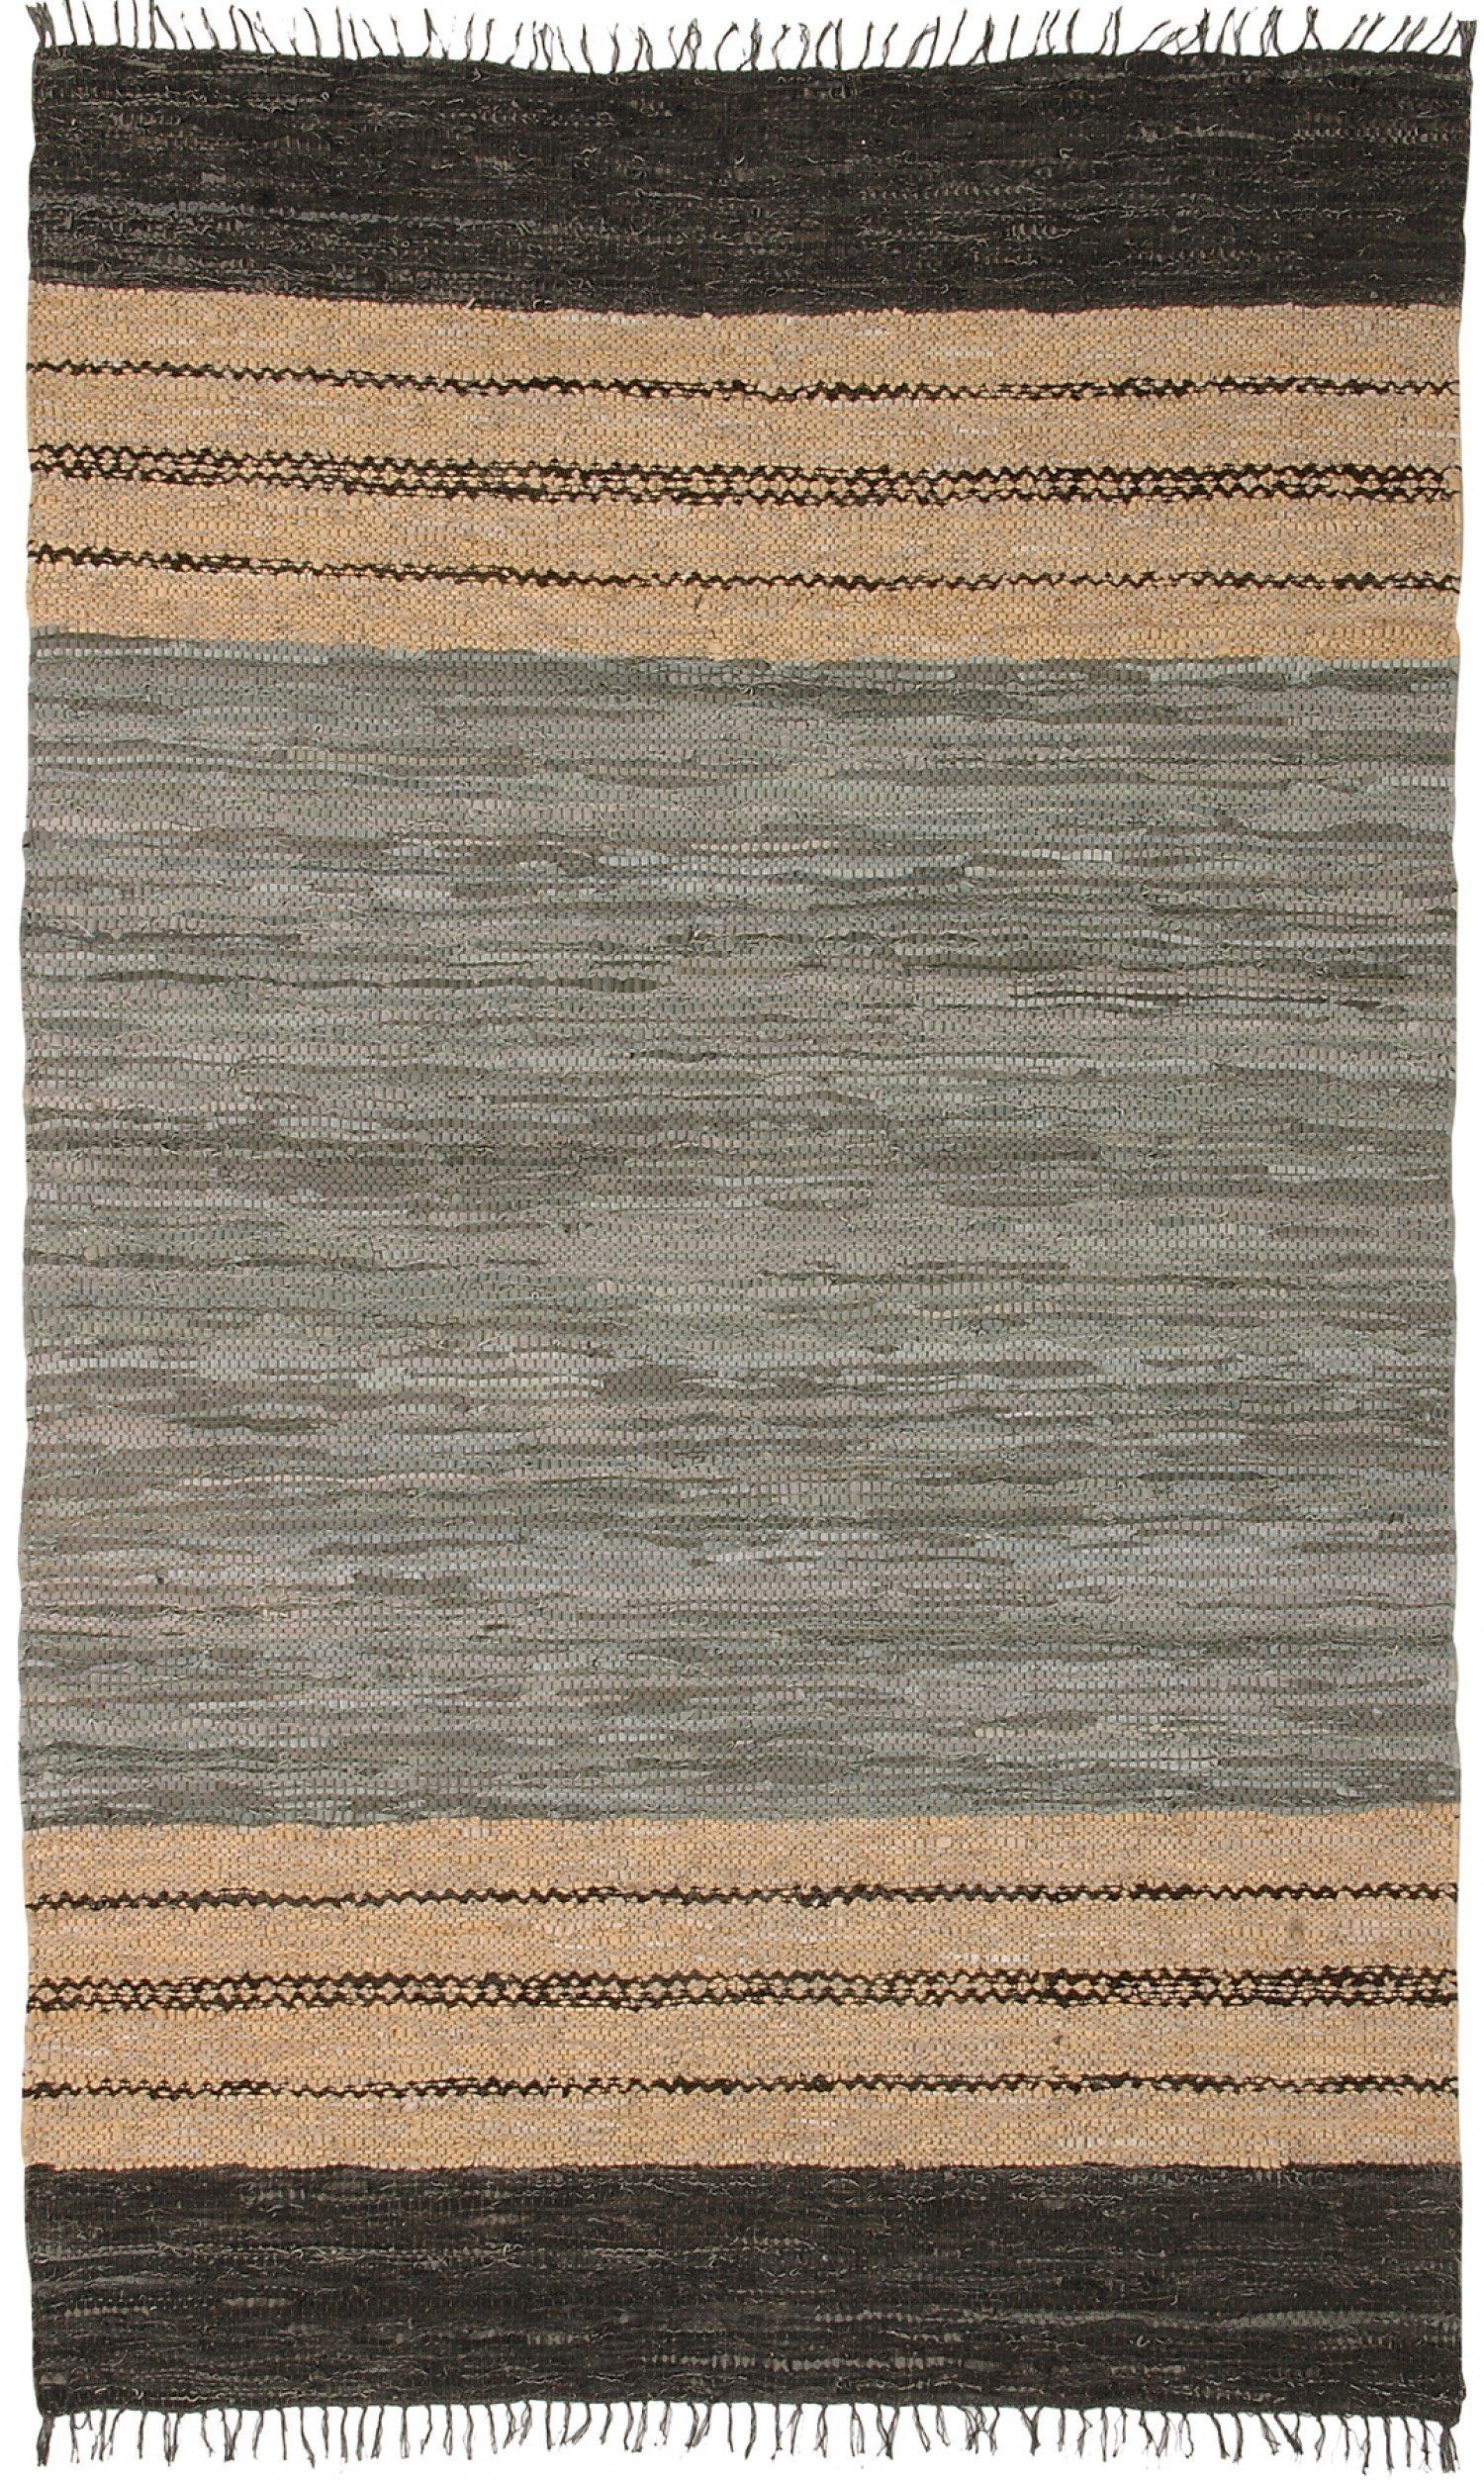 Arearugs Com Leather Ehden Le066 Gray Gray Black Tan Rug Leather Rug Tan Rug Rugs